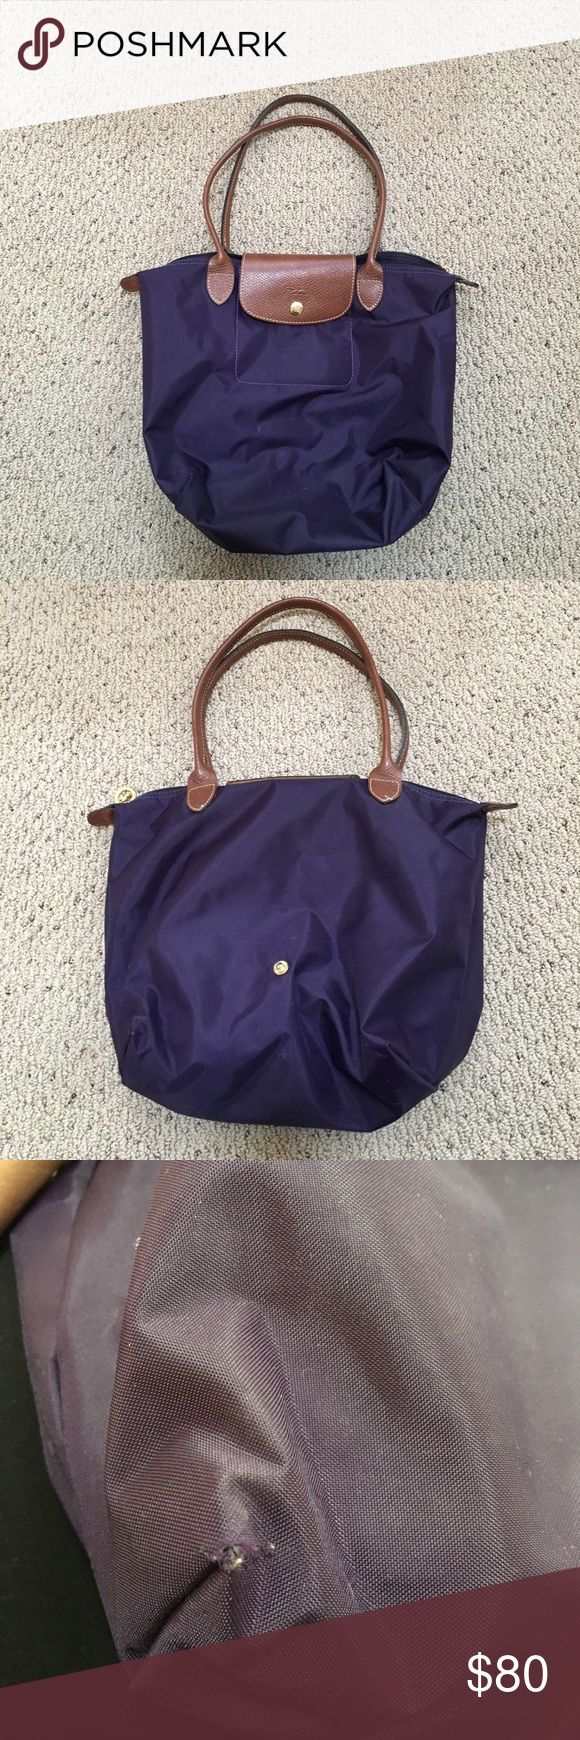 Long Champ Small Le Pliage Bag Purple small Le Pliage bag. GUC- minimal imperfections as pictured. Longchamp Bags